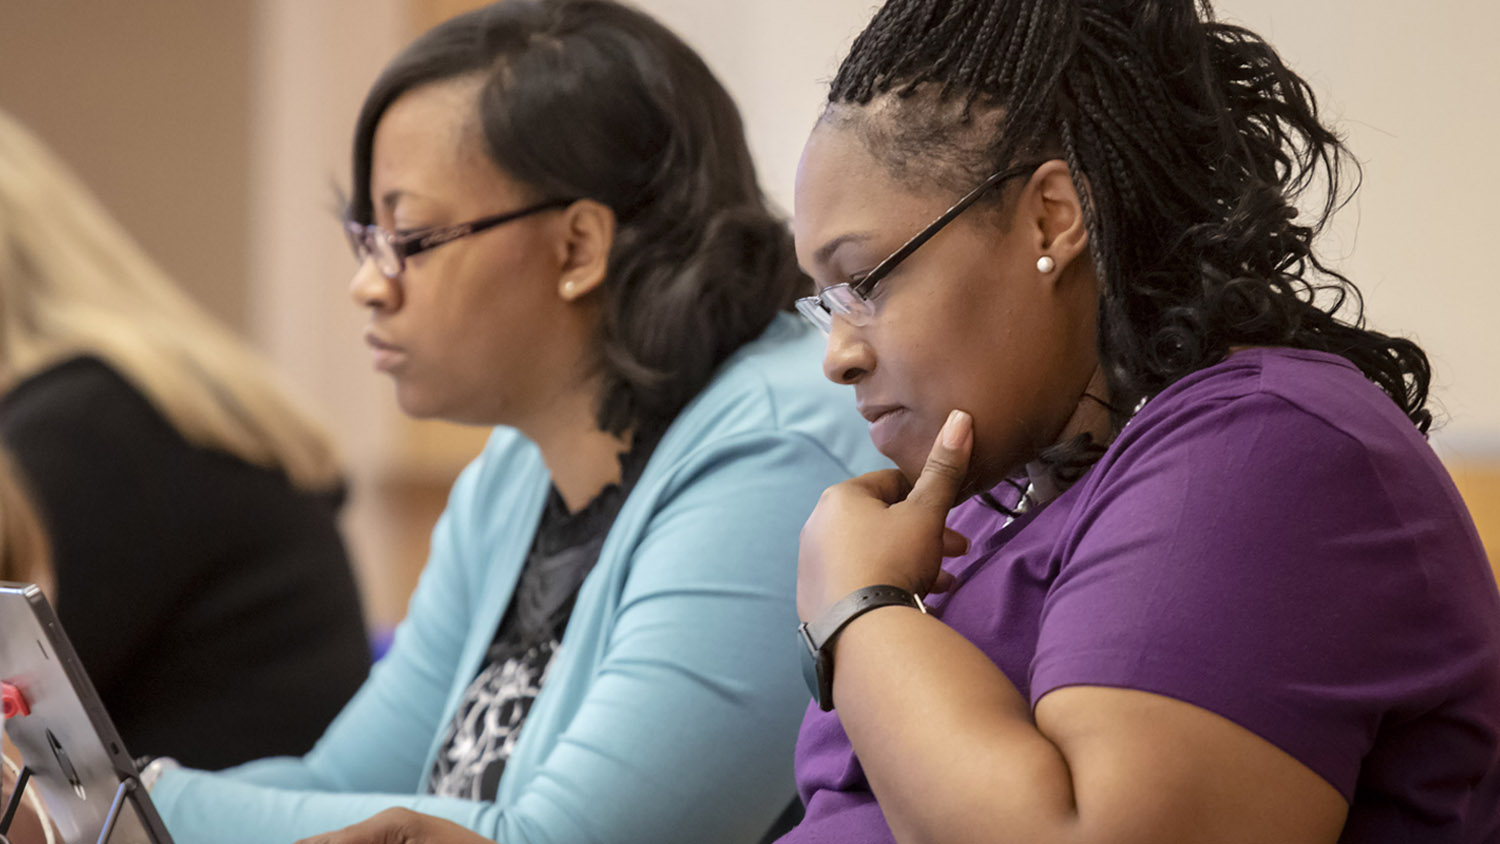 Two adult learners work side-by-side in a classroom